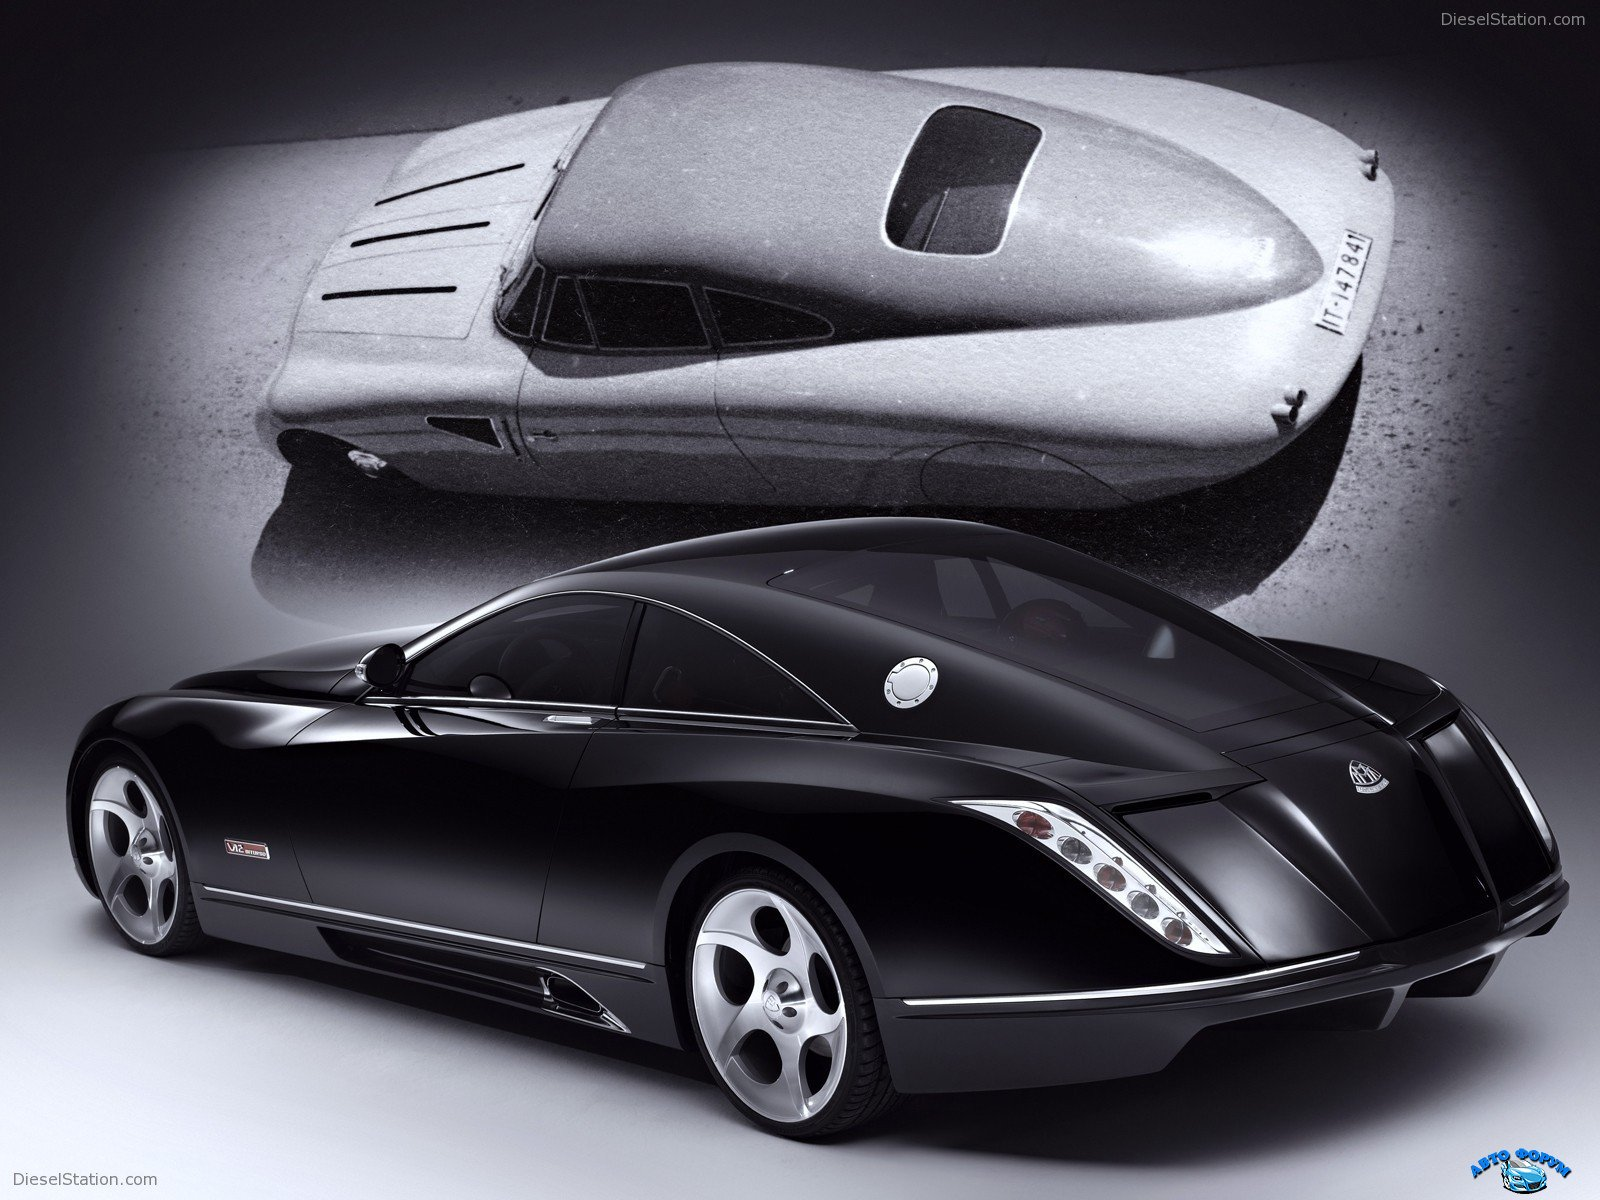 Maybach-Exelero-007.jpg